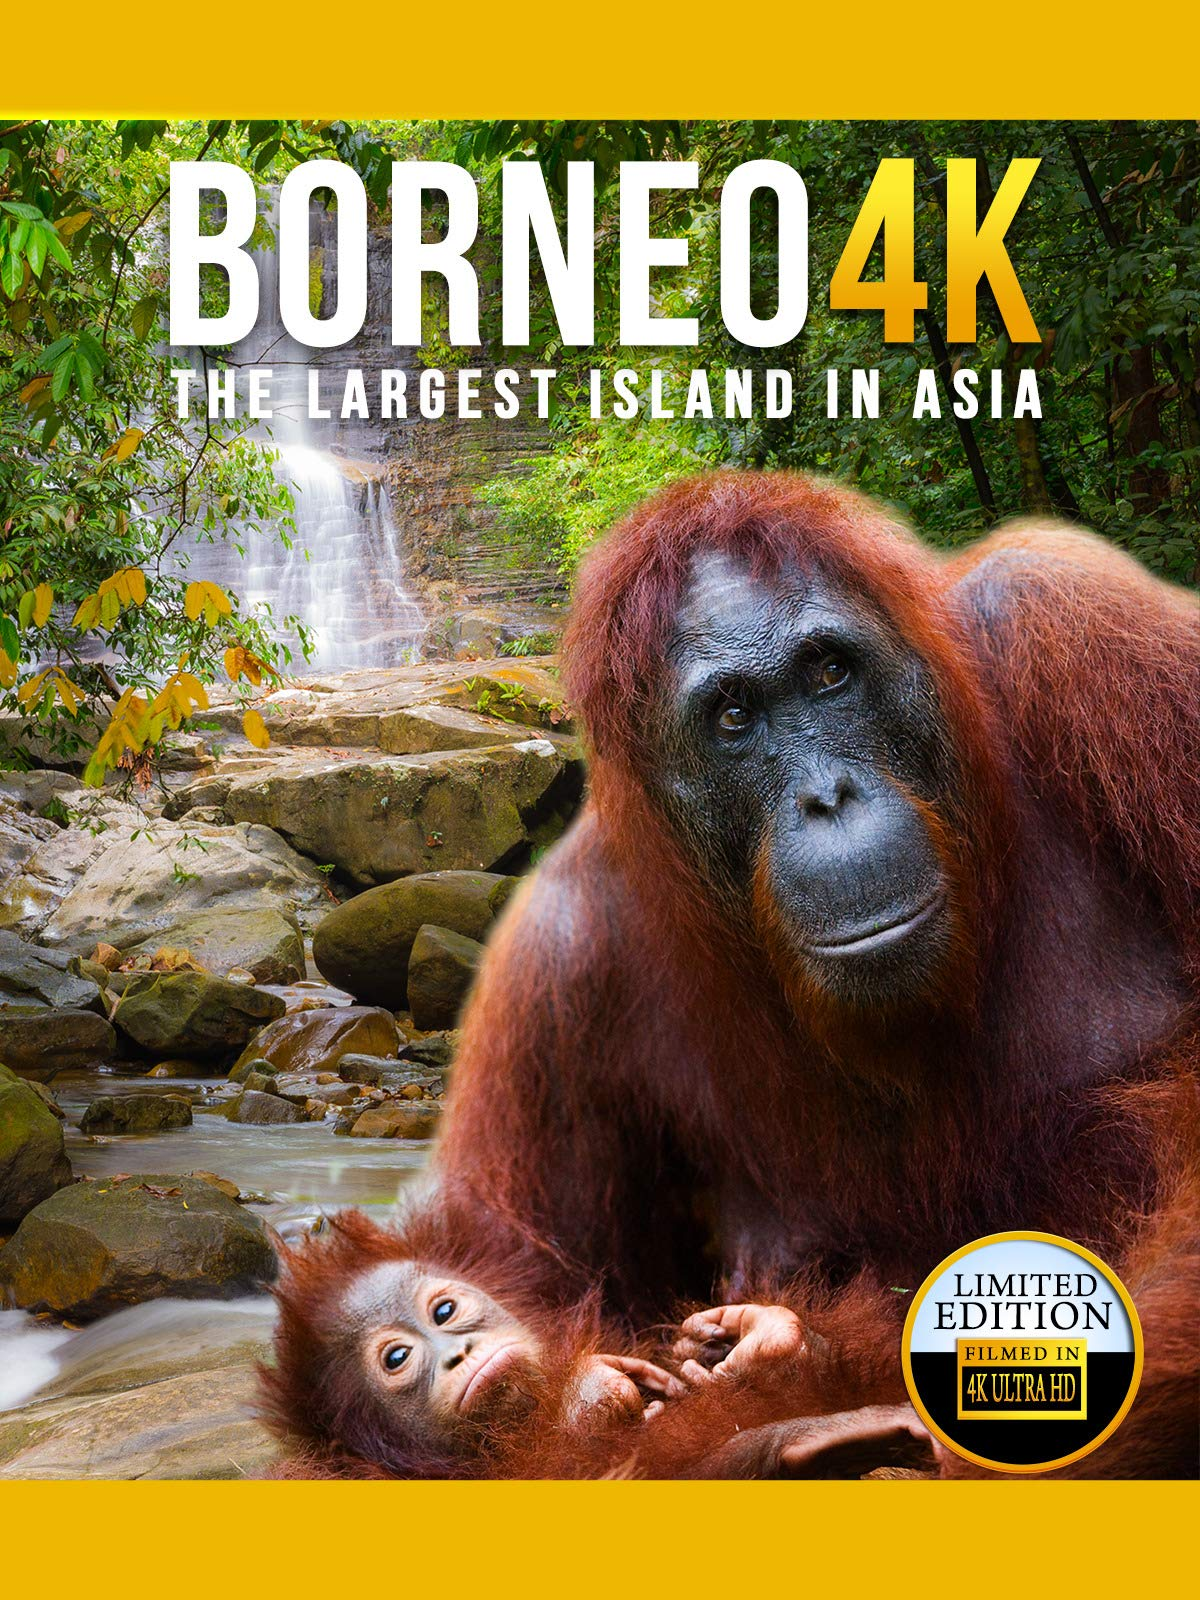 Borneo 4K on Amazon Prime Video UK